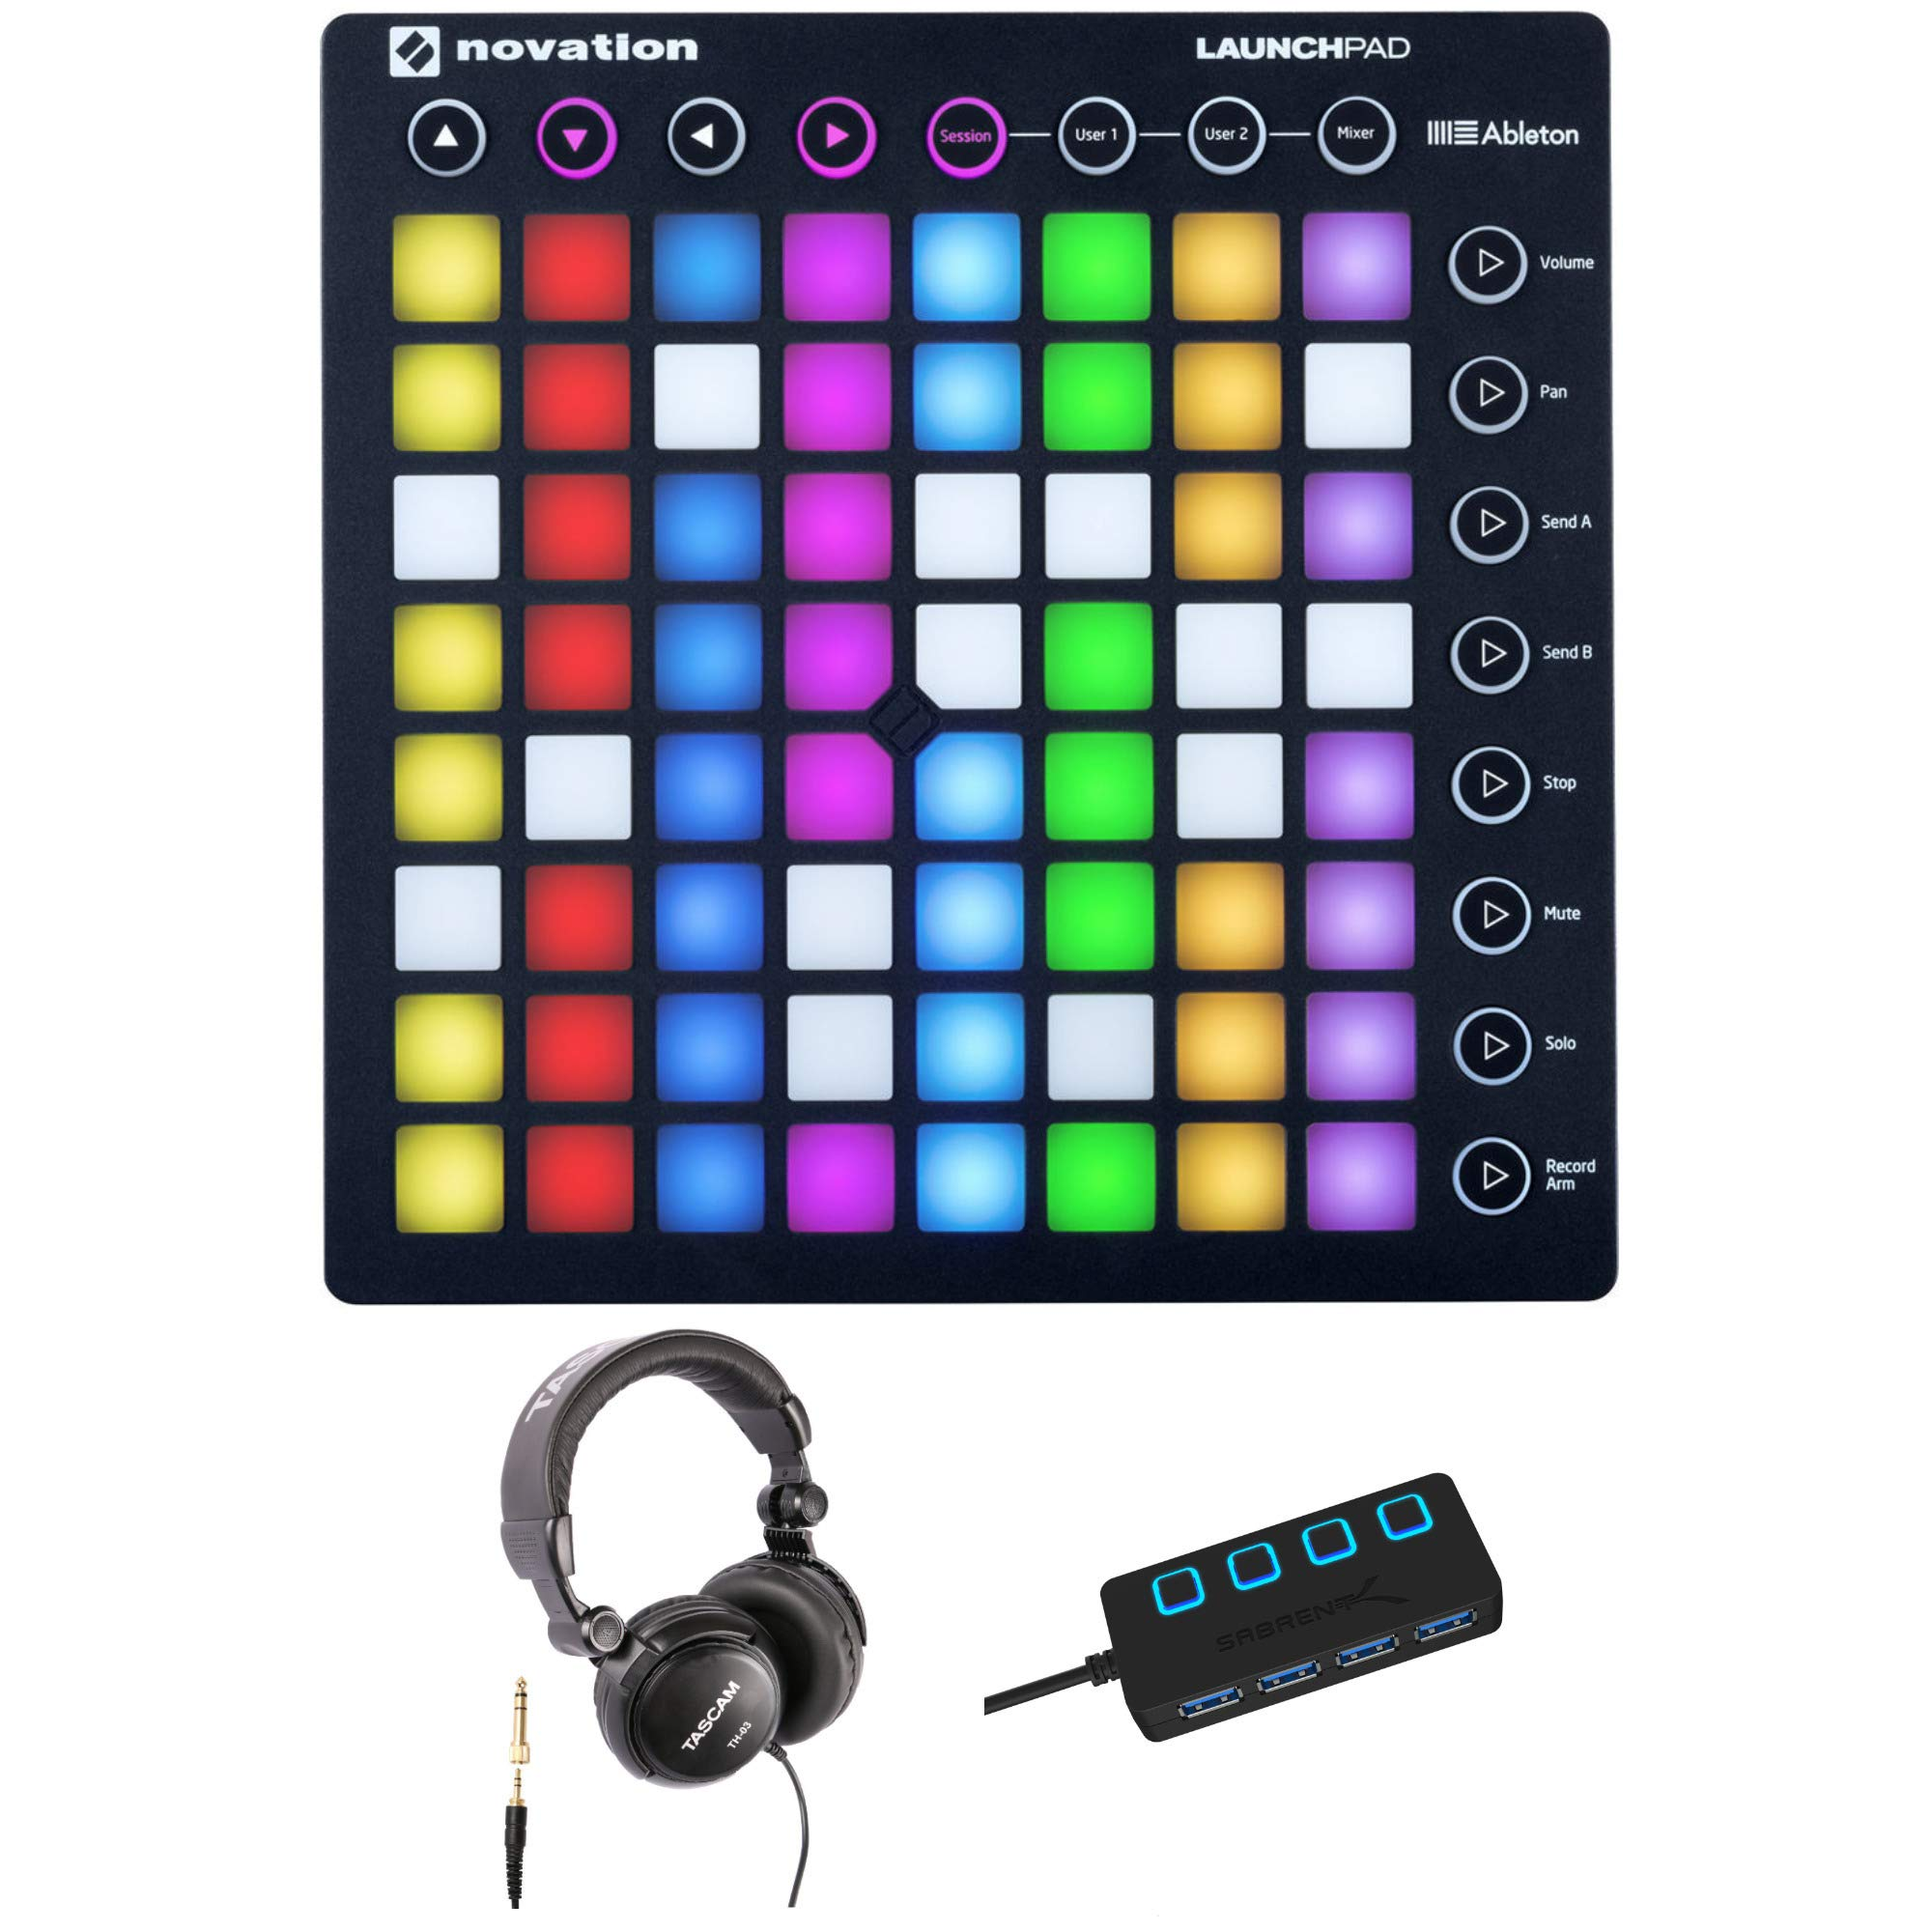 Novation Launchpad MK2 Ableton Live Grid Controller with Headphones and 4 Port 3.0 USB HUB